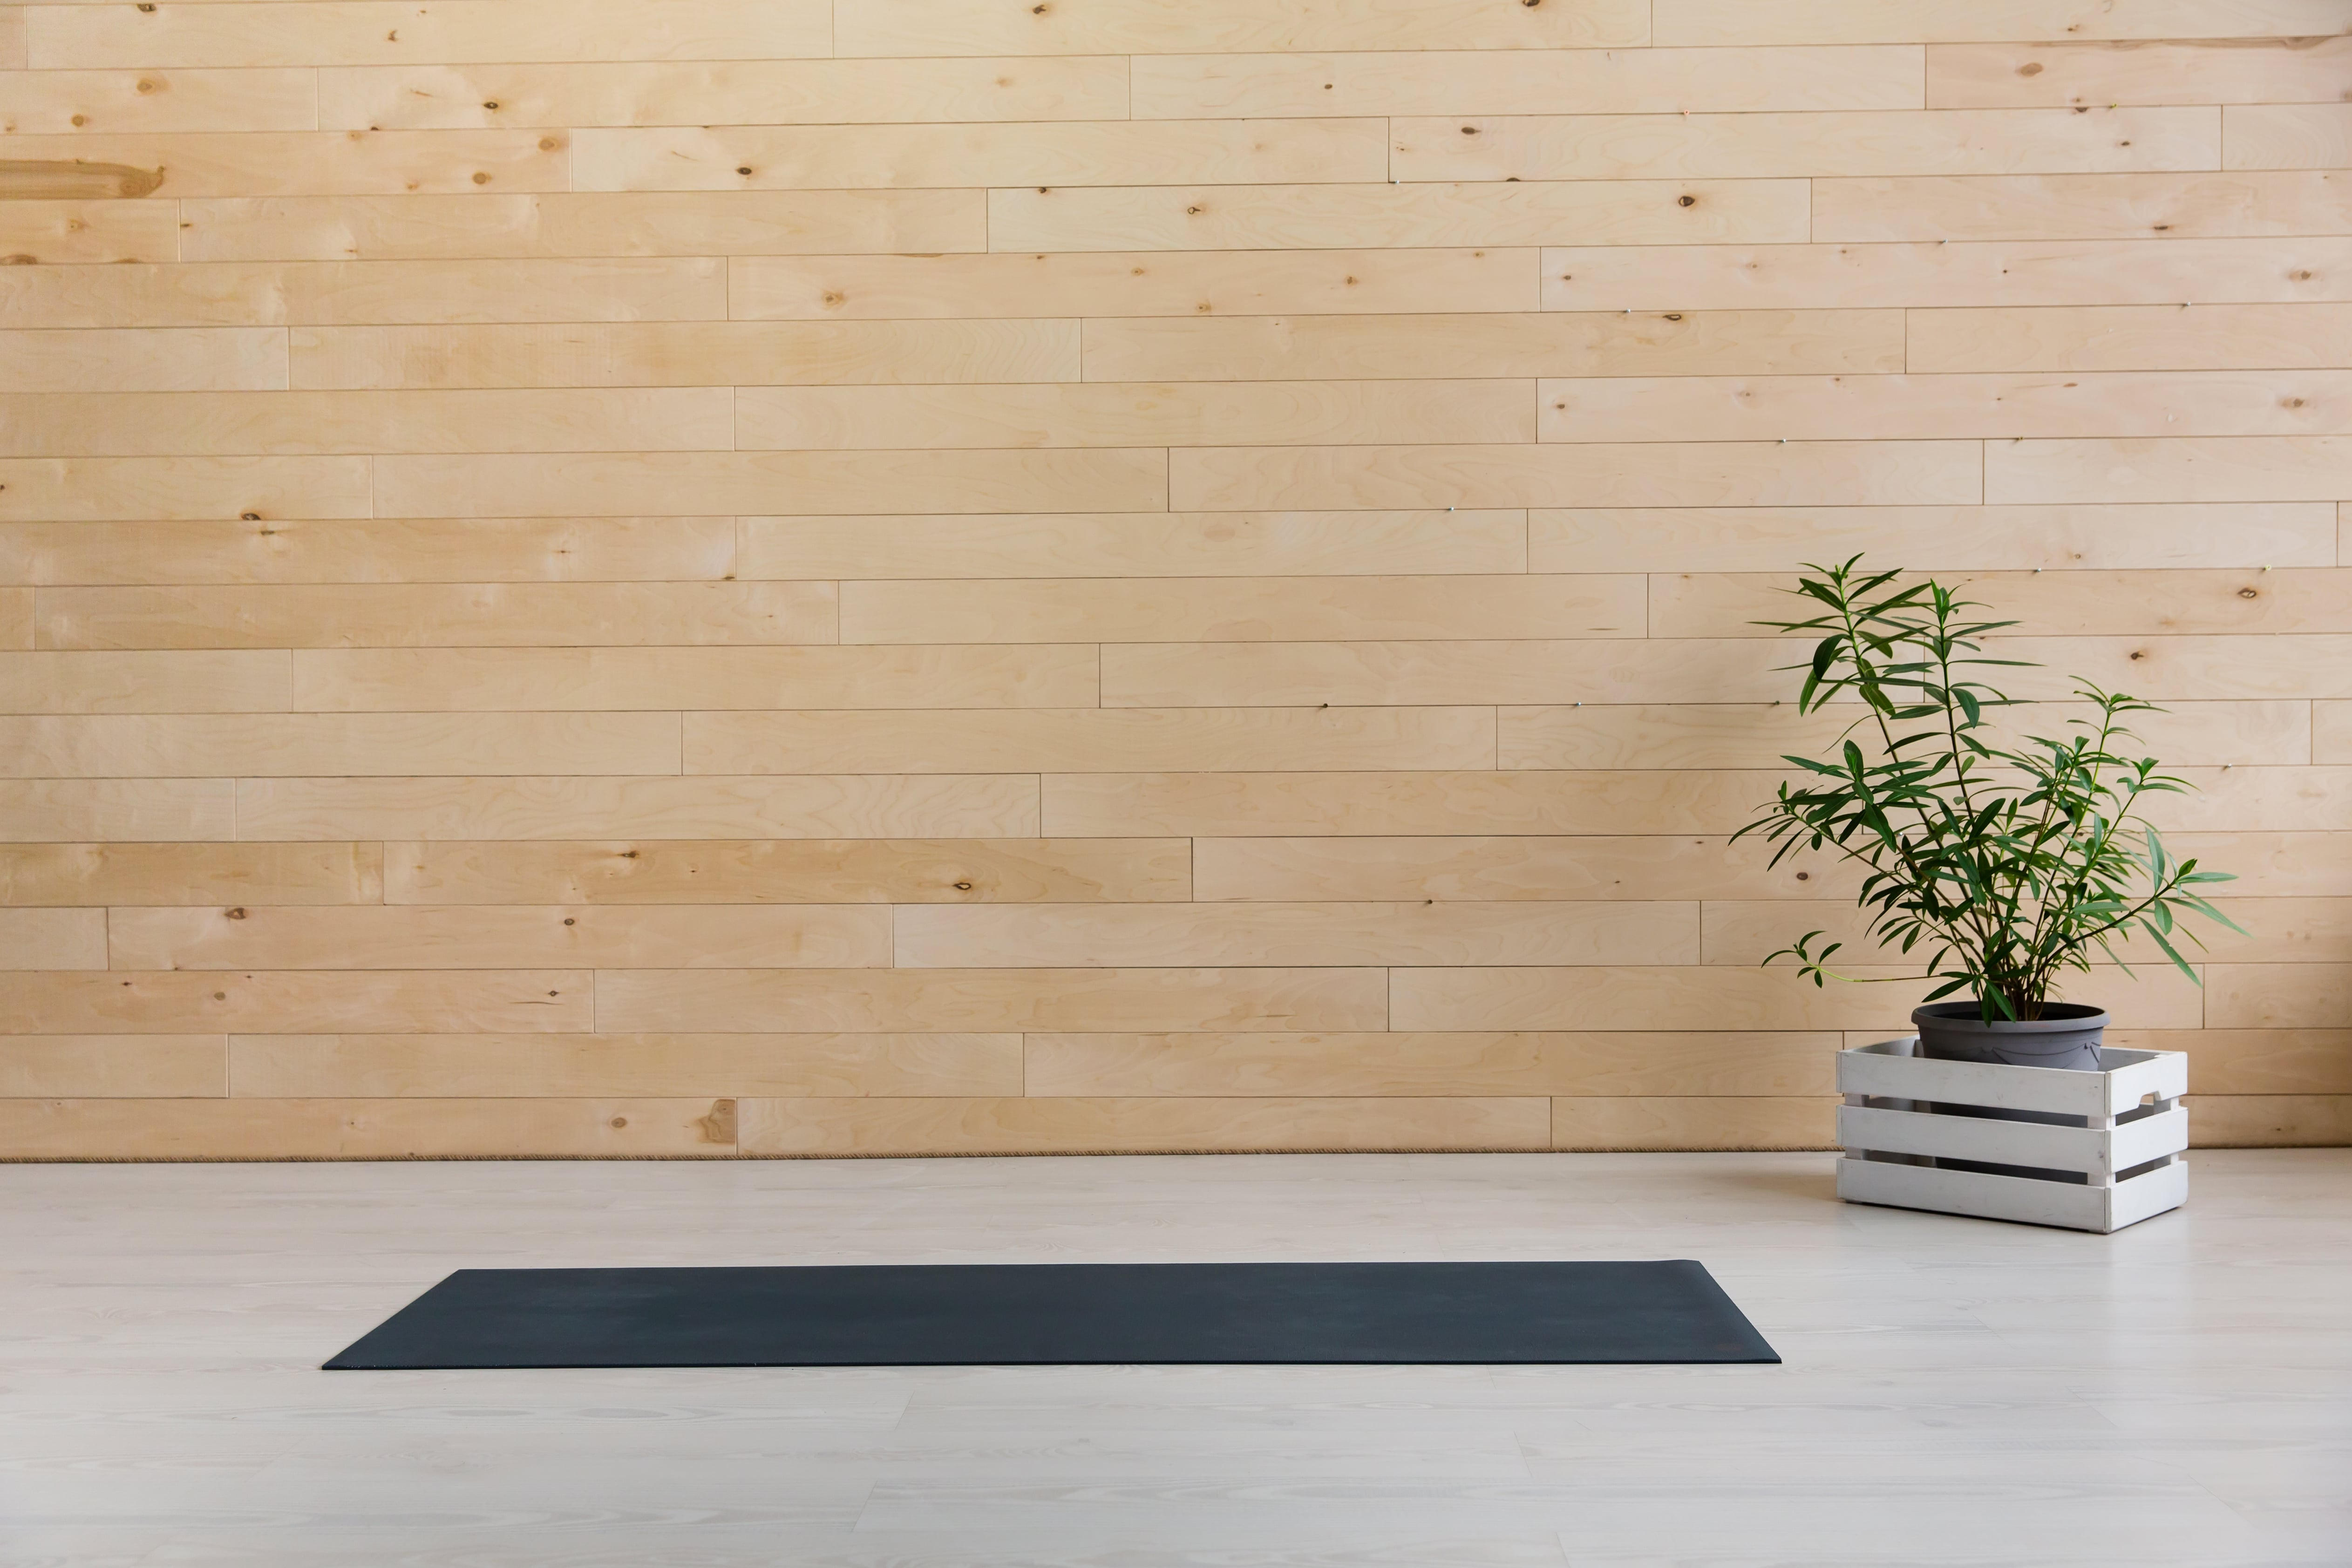 yoga mat open on a smooth surface